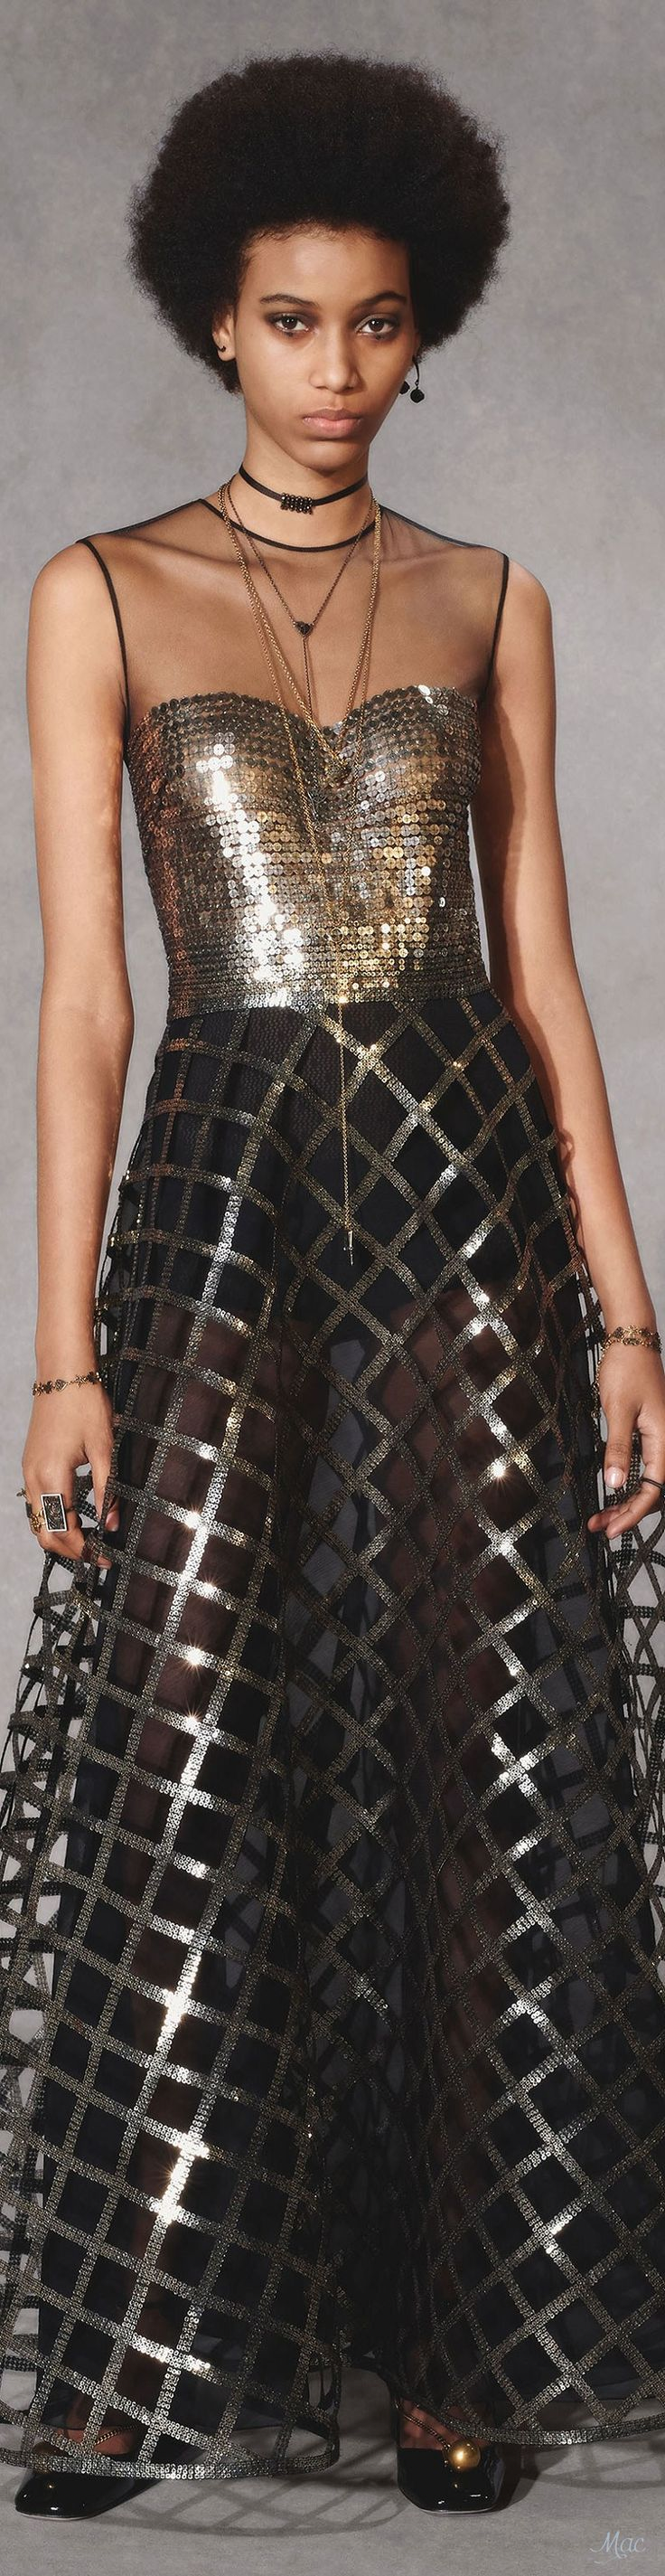 Yule style!! TREND METALLICS 2018-2019!! Noel, Christmas! New Year's Eve 2019! Silver and Black!! METALLICS are so hot for the whole year! Pre-Fall 2018 Christian Dior